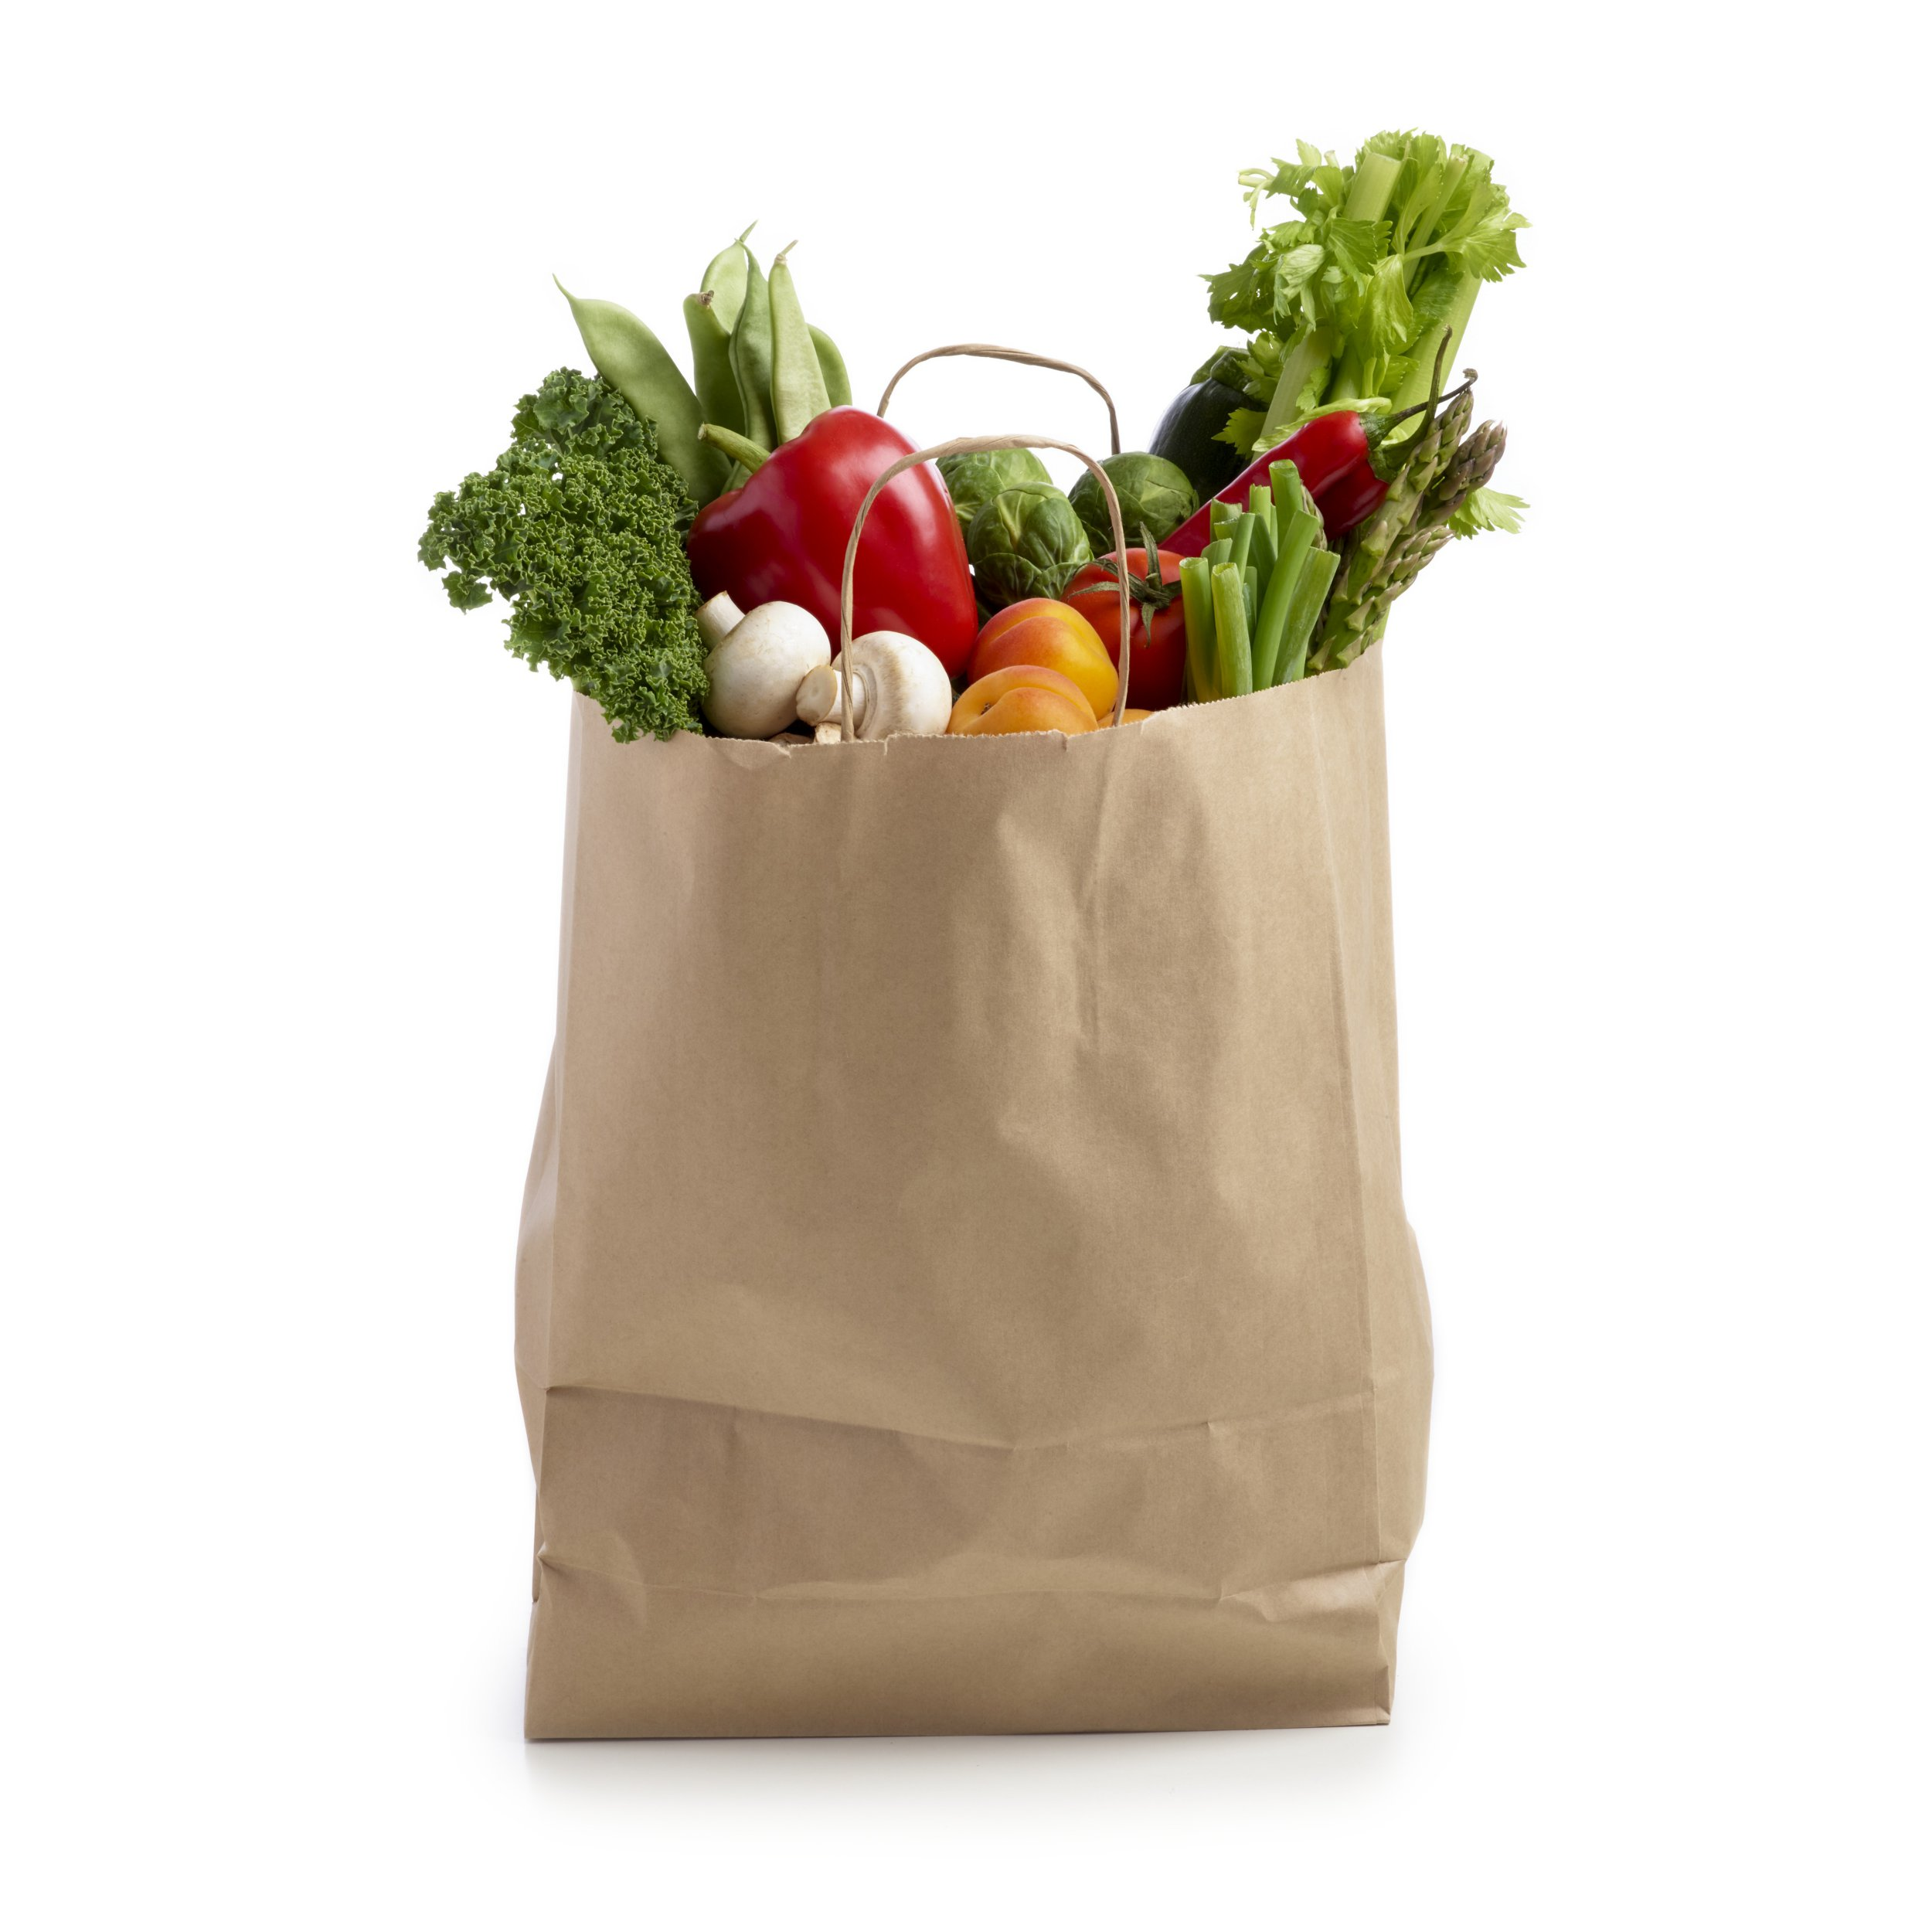 Shopping bag full of fresh produce against a white background.